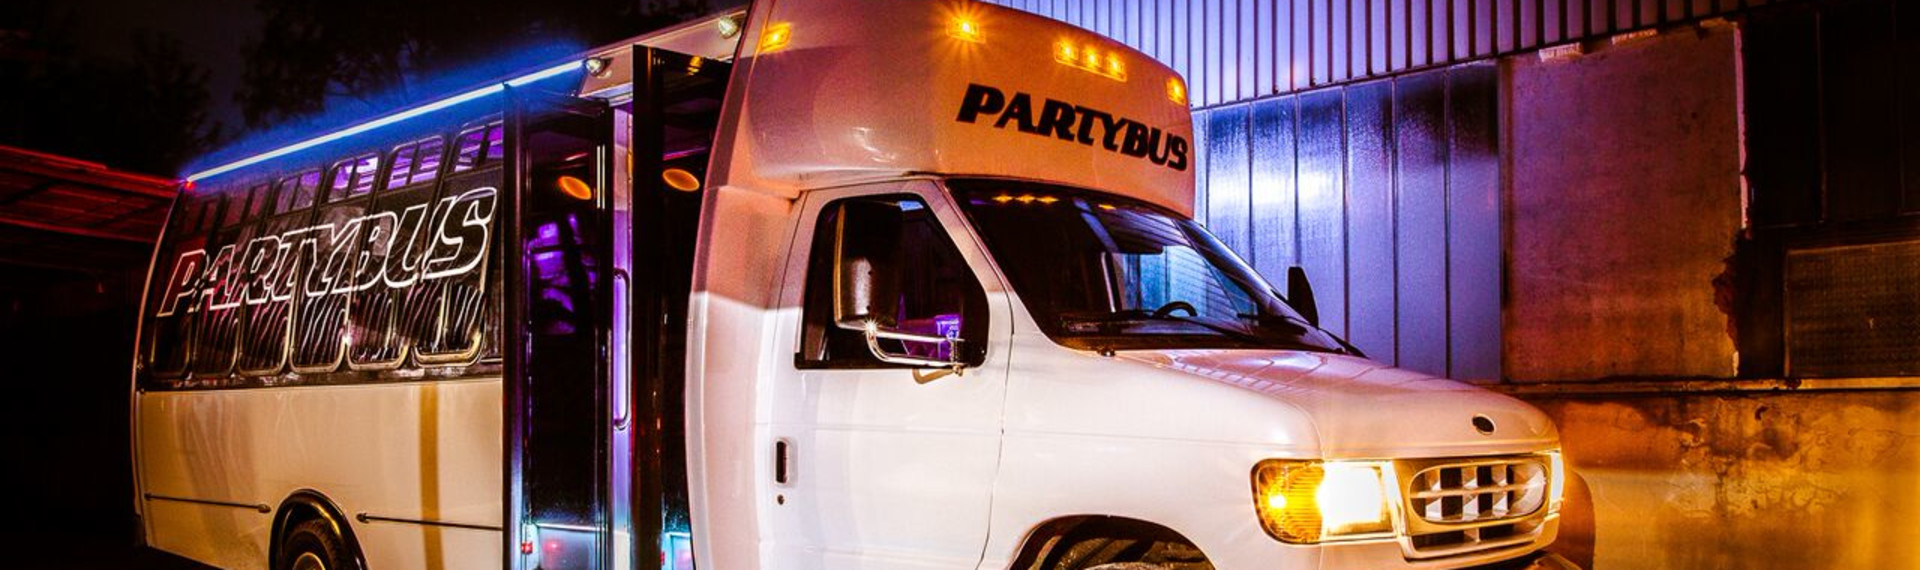 Berlin Partybus mit Strip image